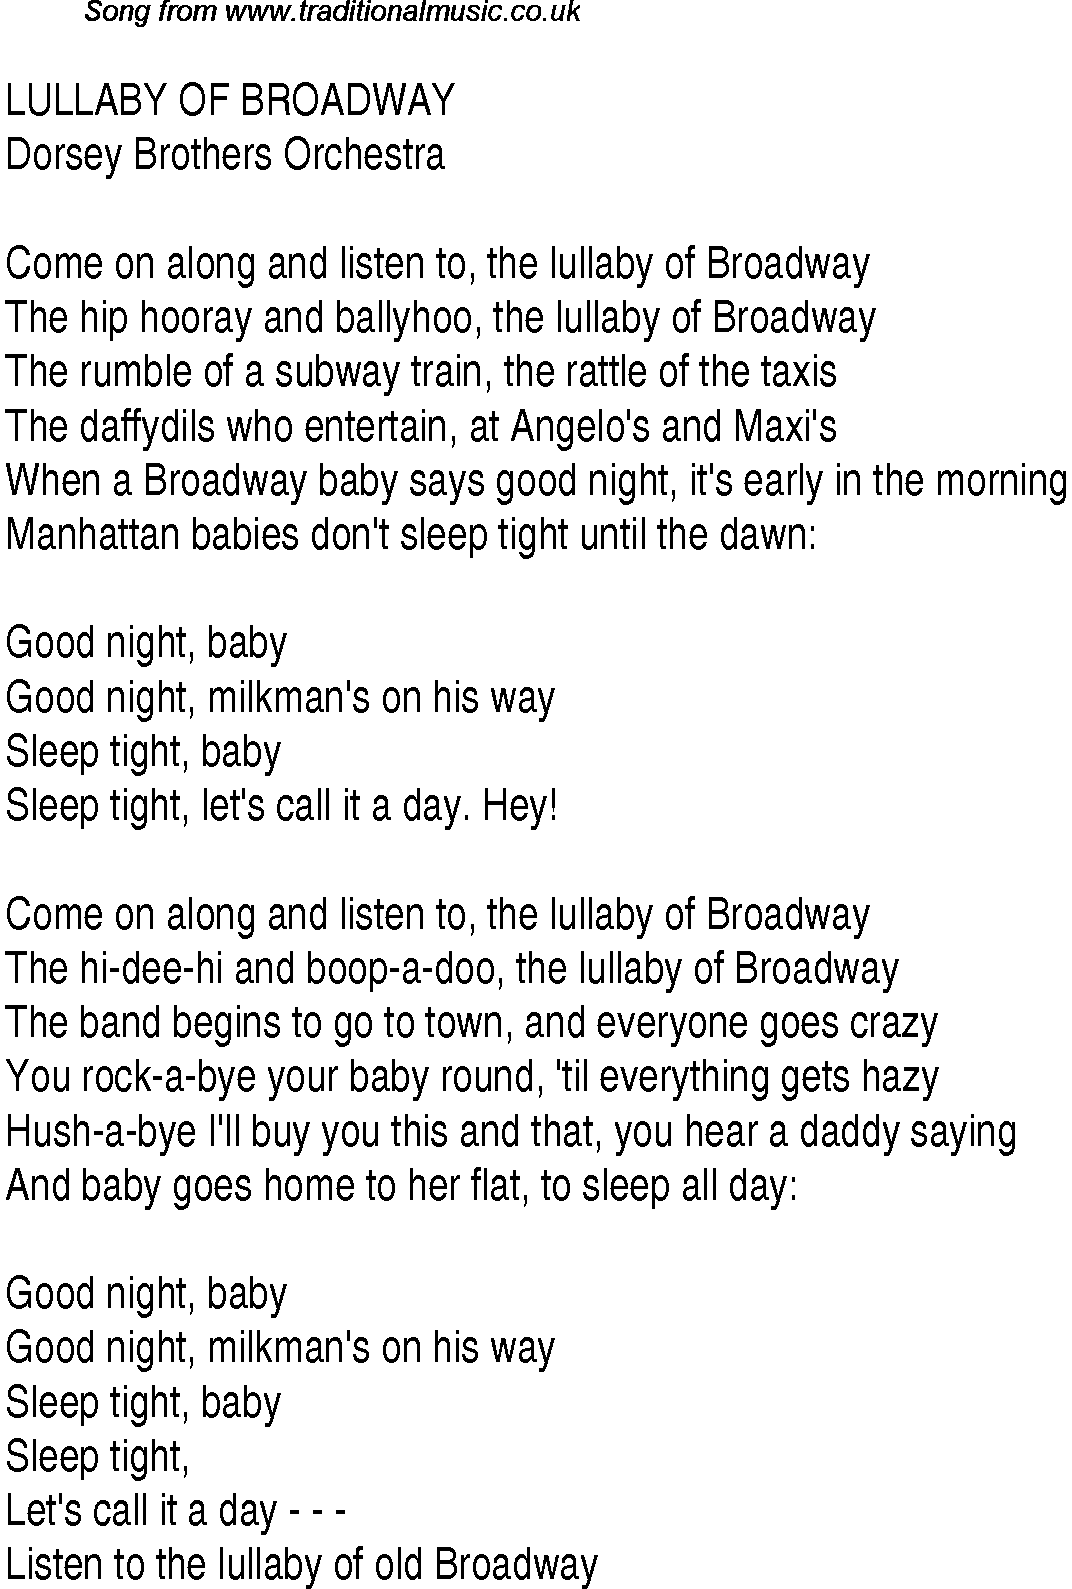 Brahms Lullaby (Cradle Song/Lullaby and Goodnight)